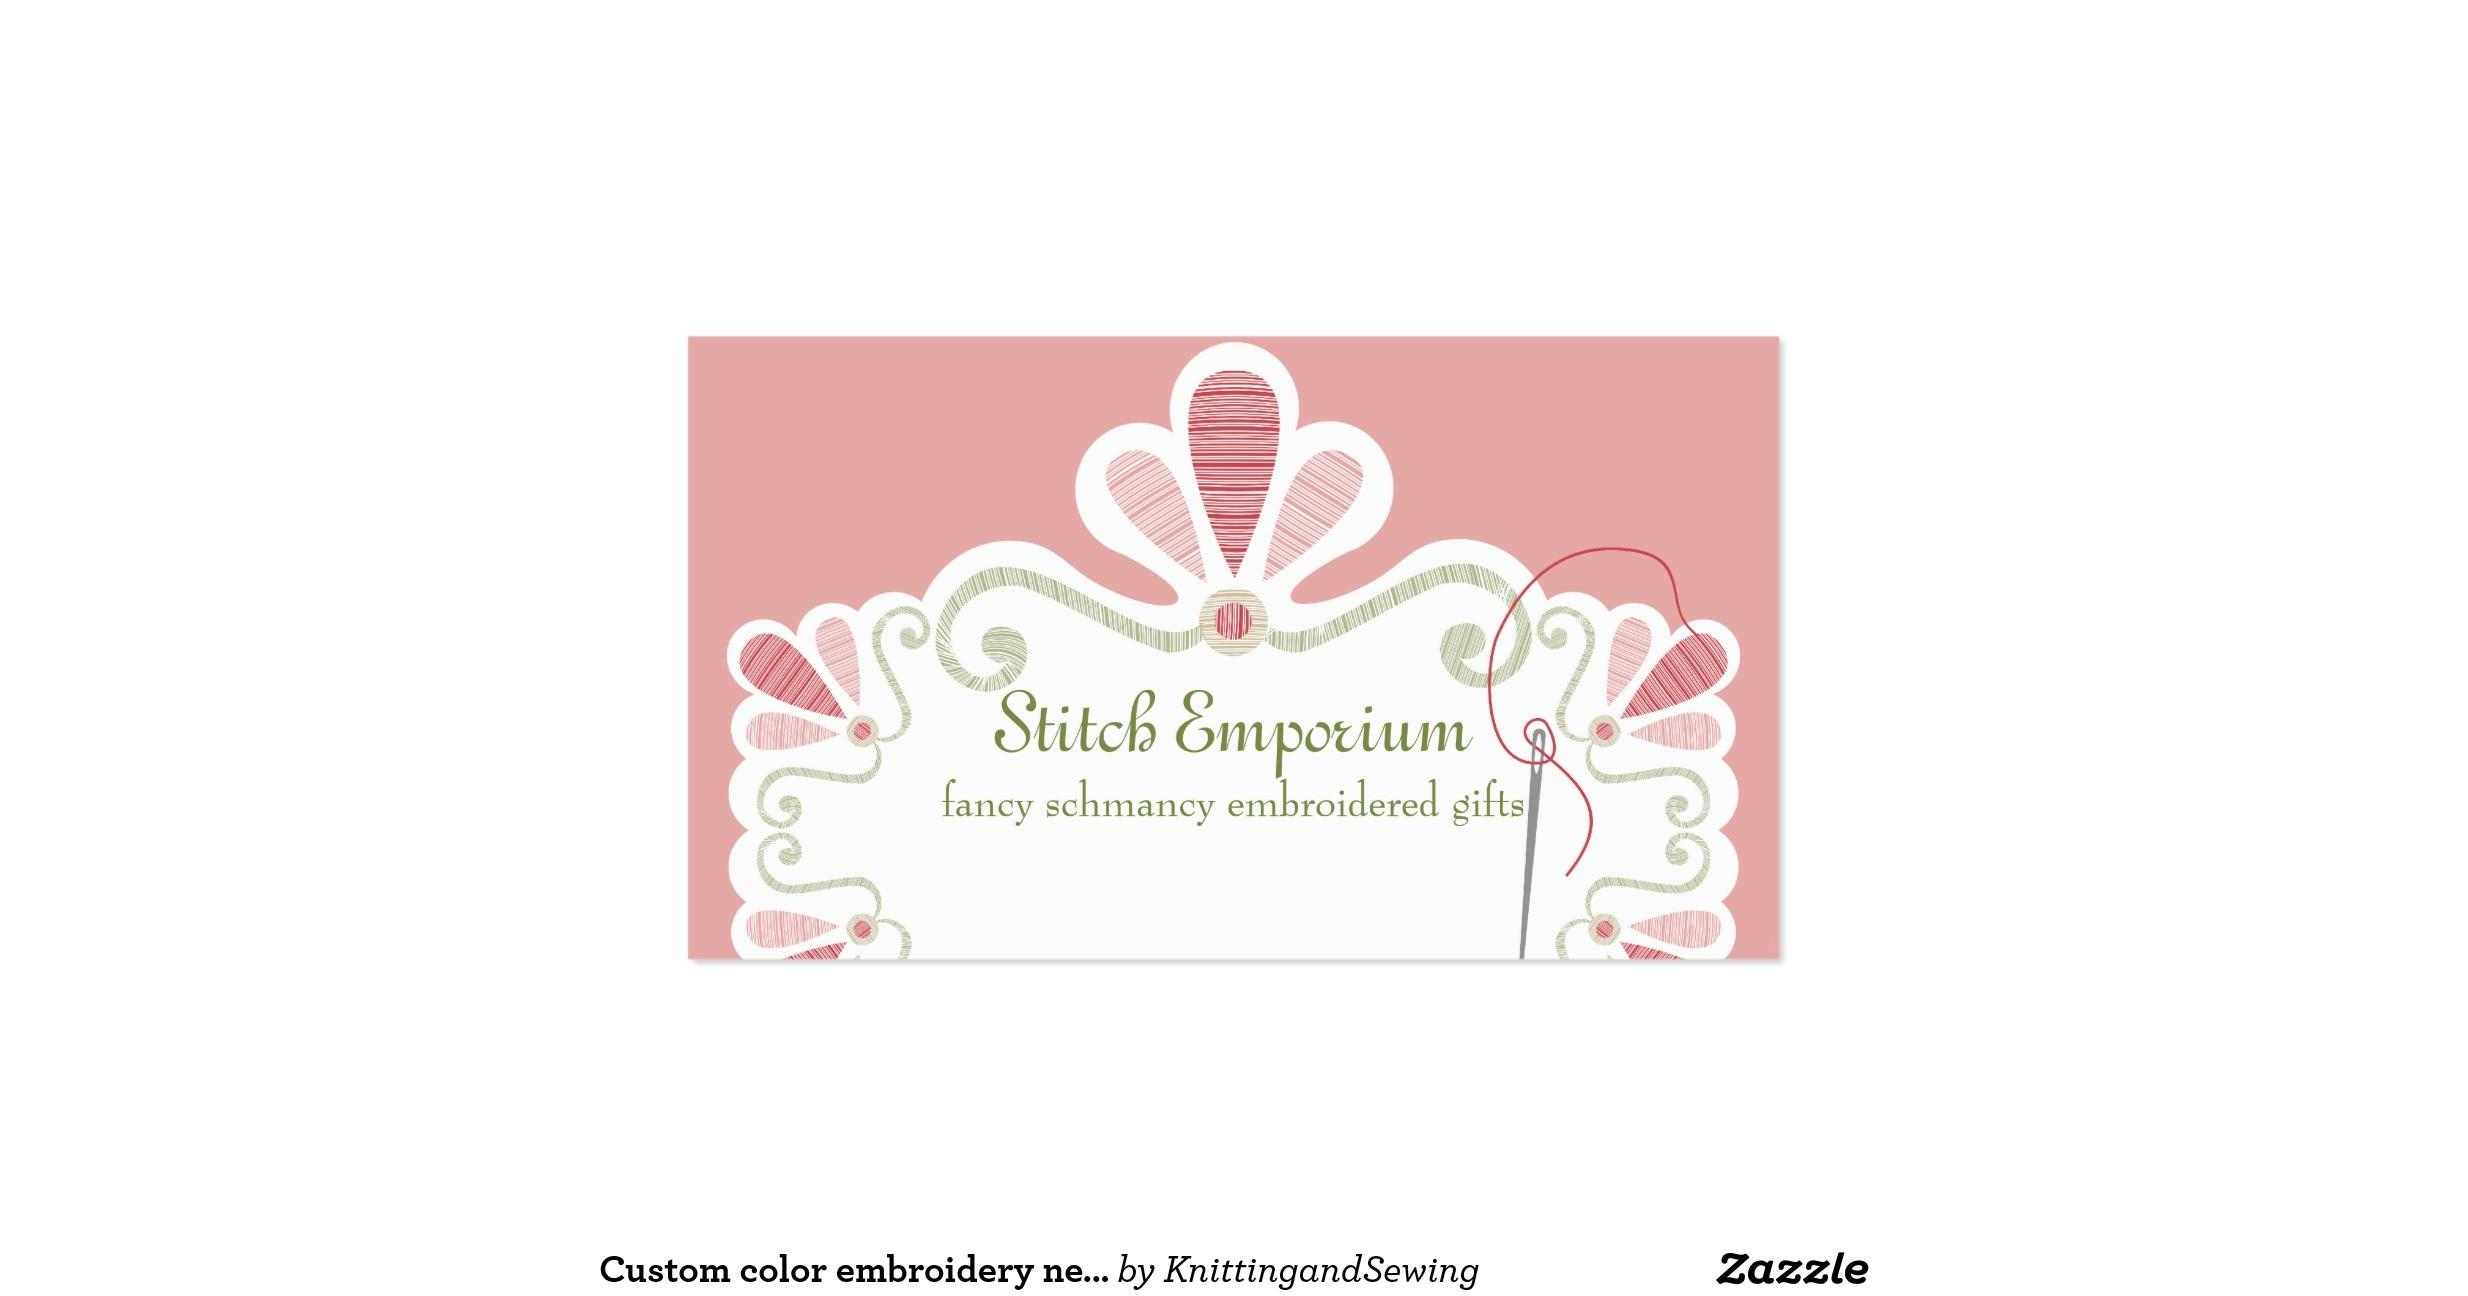 Embroidery Business Card Ideas Makaroka